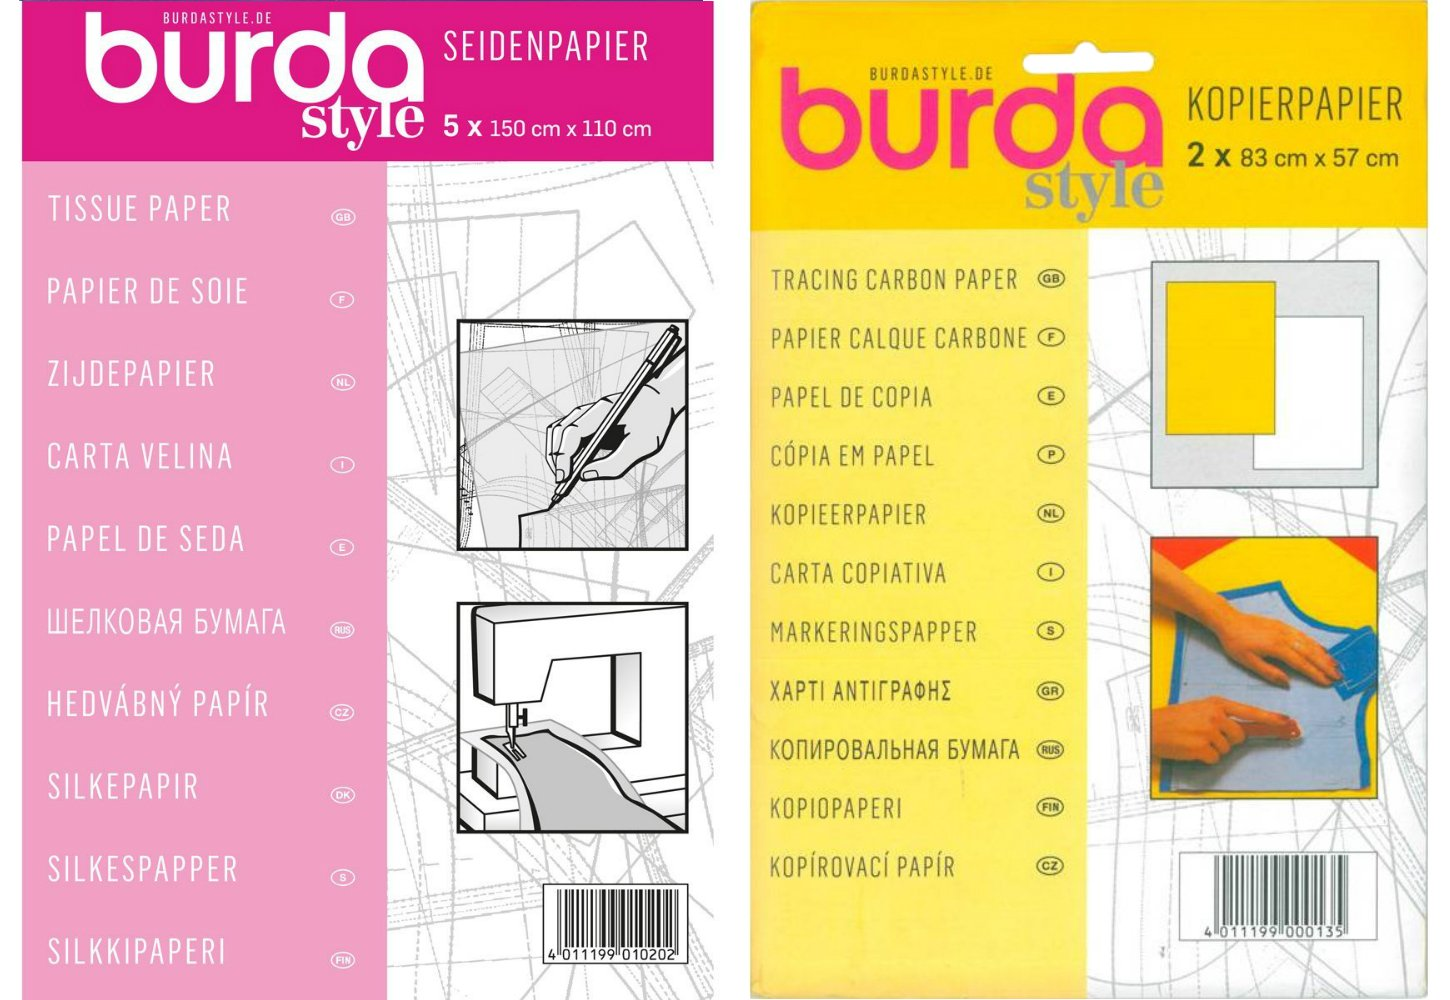 Burda Double Pack - Dressmakers Tissue Paper | 110 x 150cm + Yellow & White Tracing Carbon Paper 83x57cm, 2 Sheets